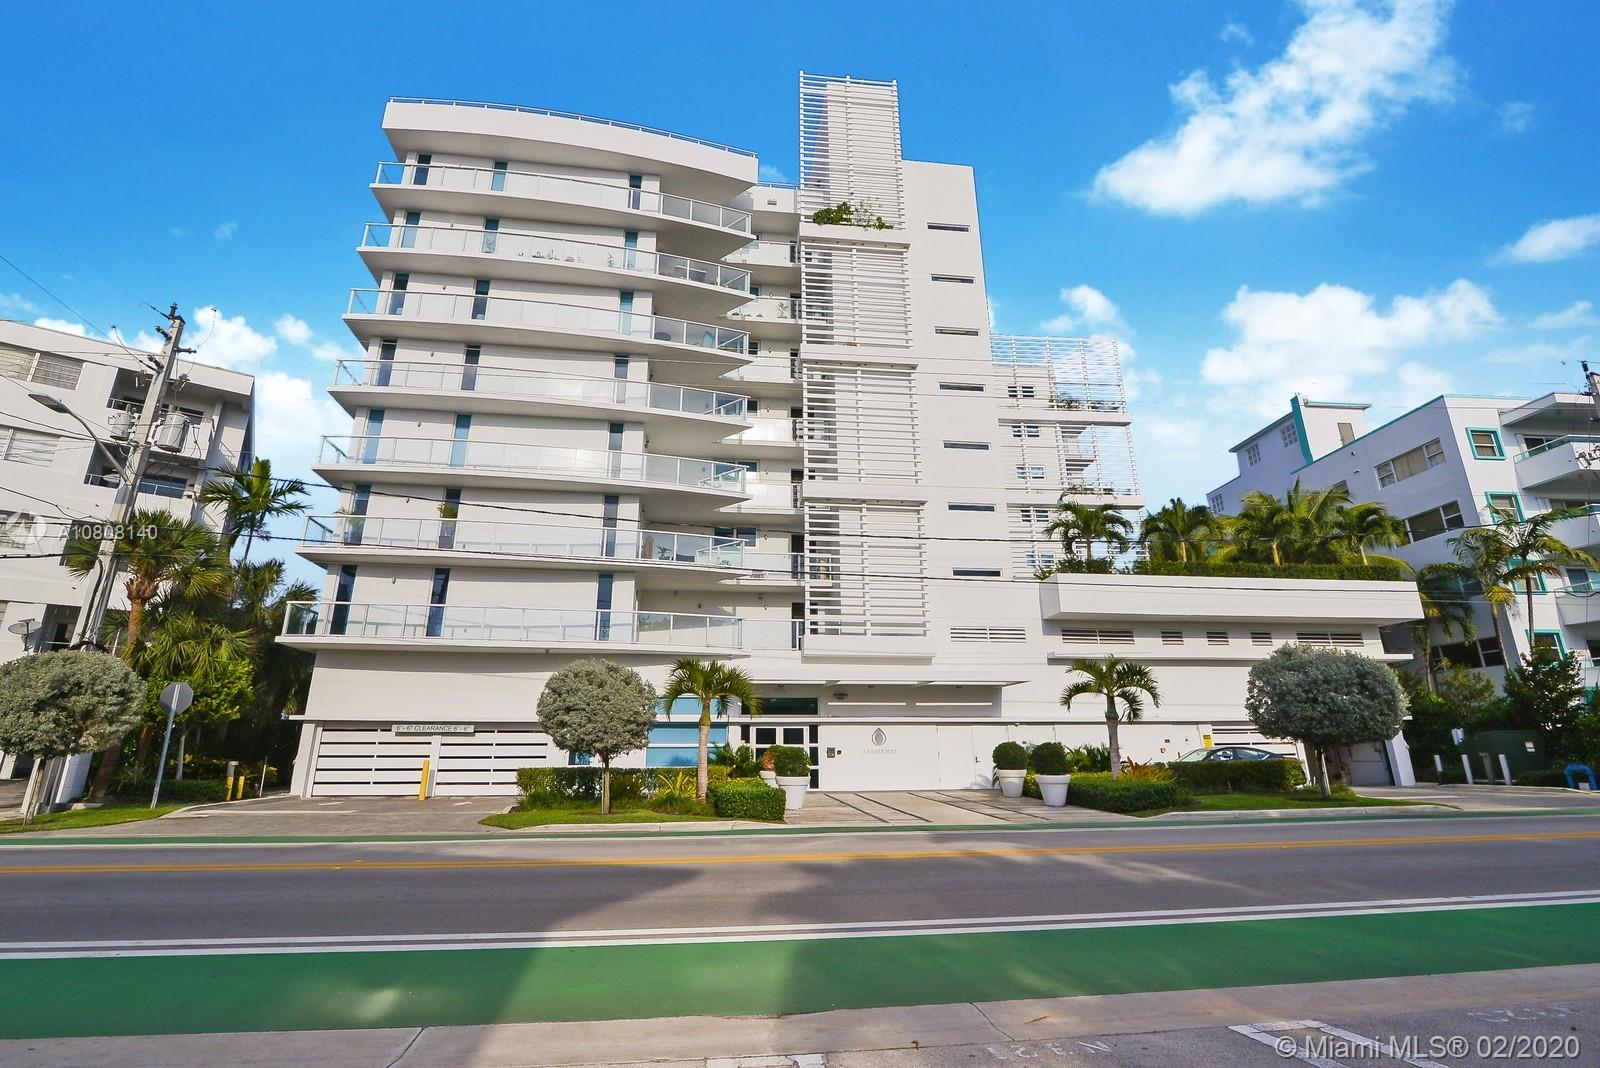 "Amazing corner unit with bay views!!Open kitchen with Viking appliances and gorgeous views from a wrap around balcony. Building includes a zero edge zen pool and a infinity hot tub with cascading waterfalls, well equipped gym, plus much more! Delight yourself with an additional garage space and a ""2boat"" Carefree boat membership all included with the purchase of this beautiful unit. Access to two boats (off site) and dock space and additional storage as well. Owner added $50k in tasteful upgrades. Motivated and priced to sell."